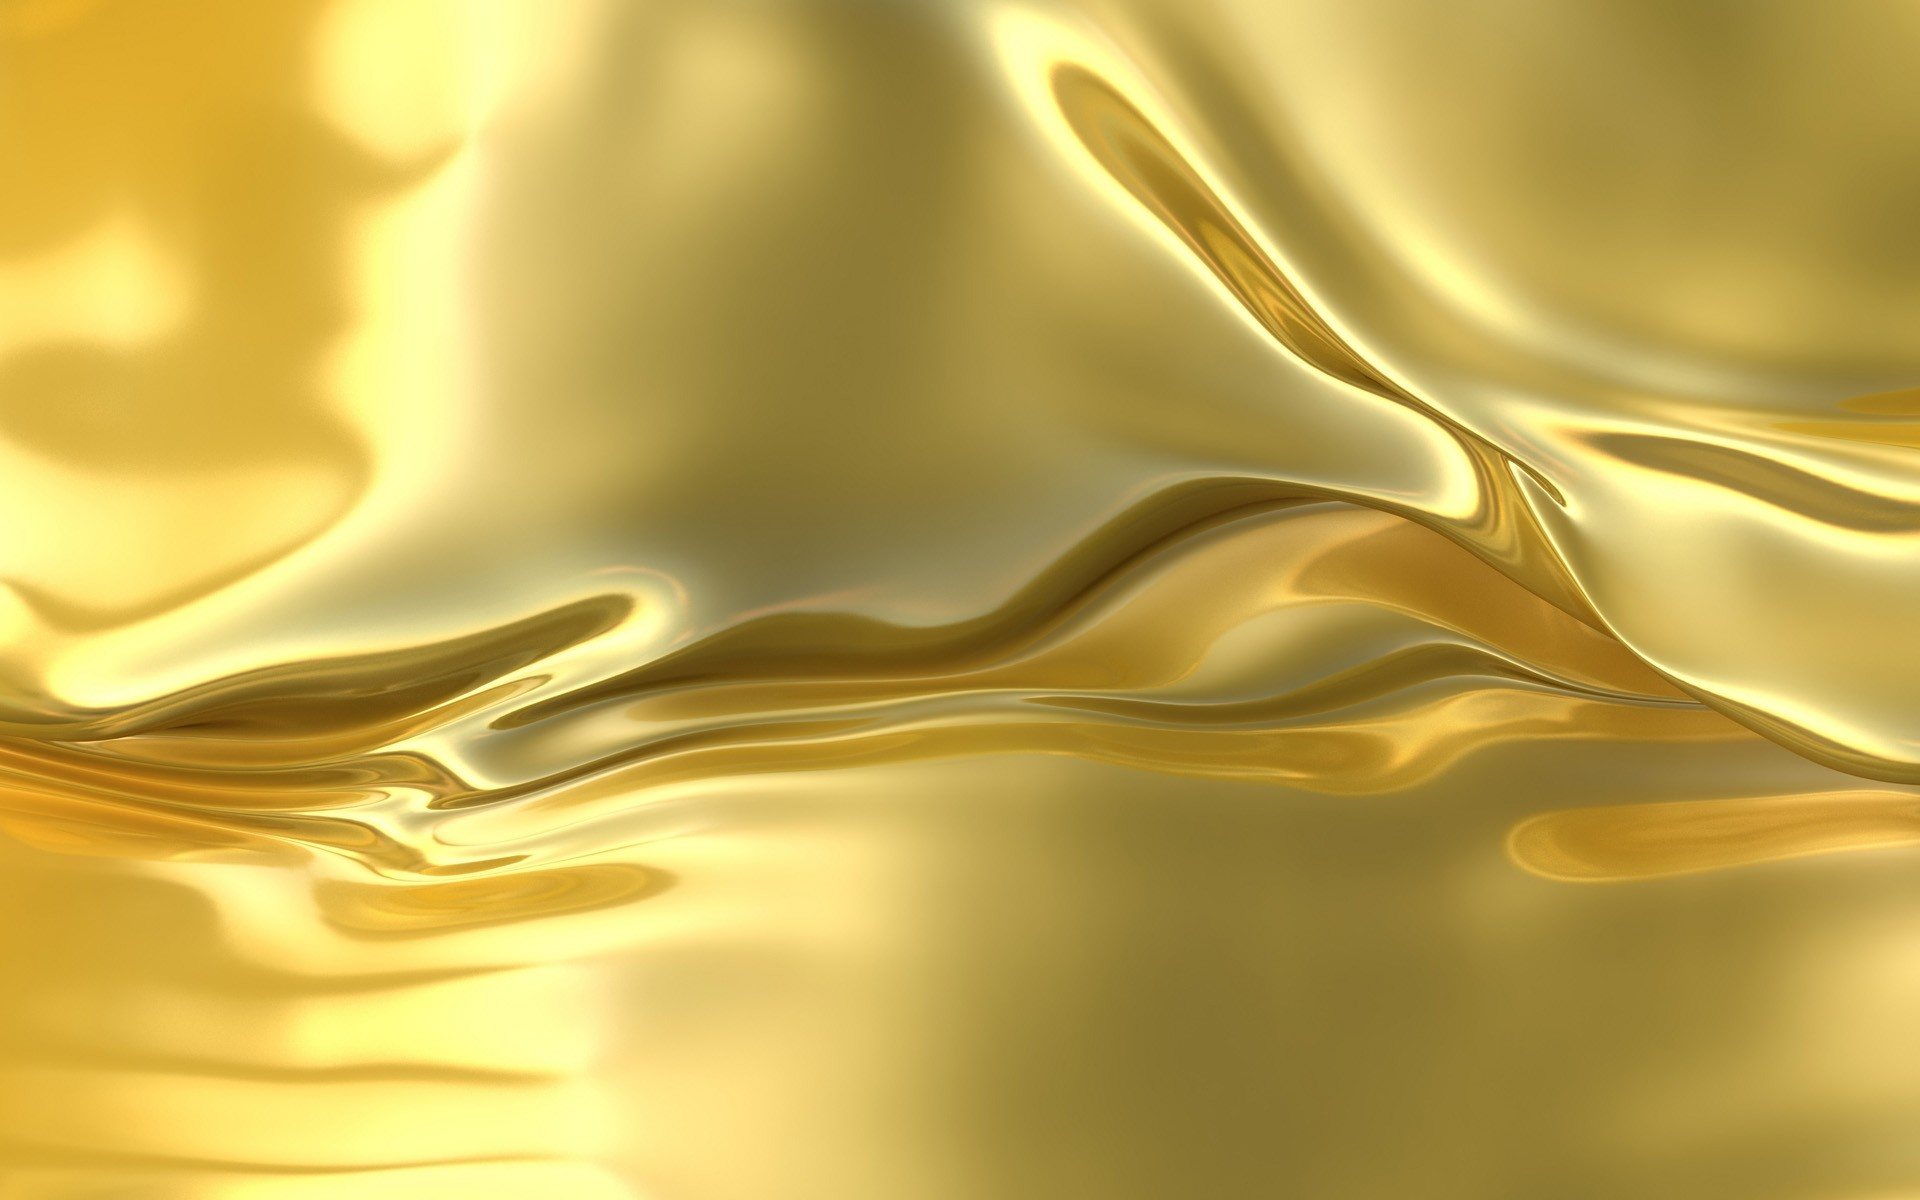 Gold Wallpapers 70 Background Pictures